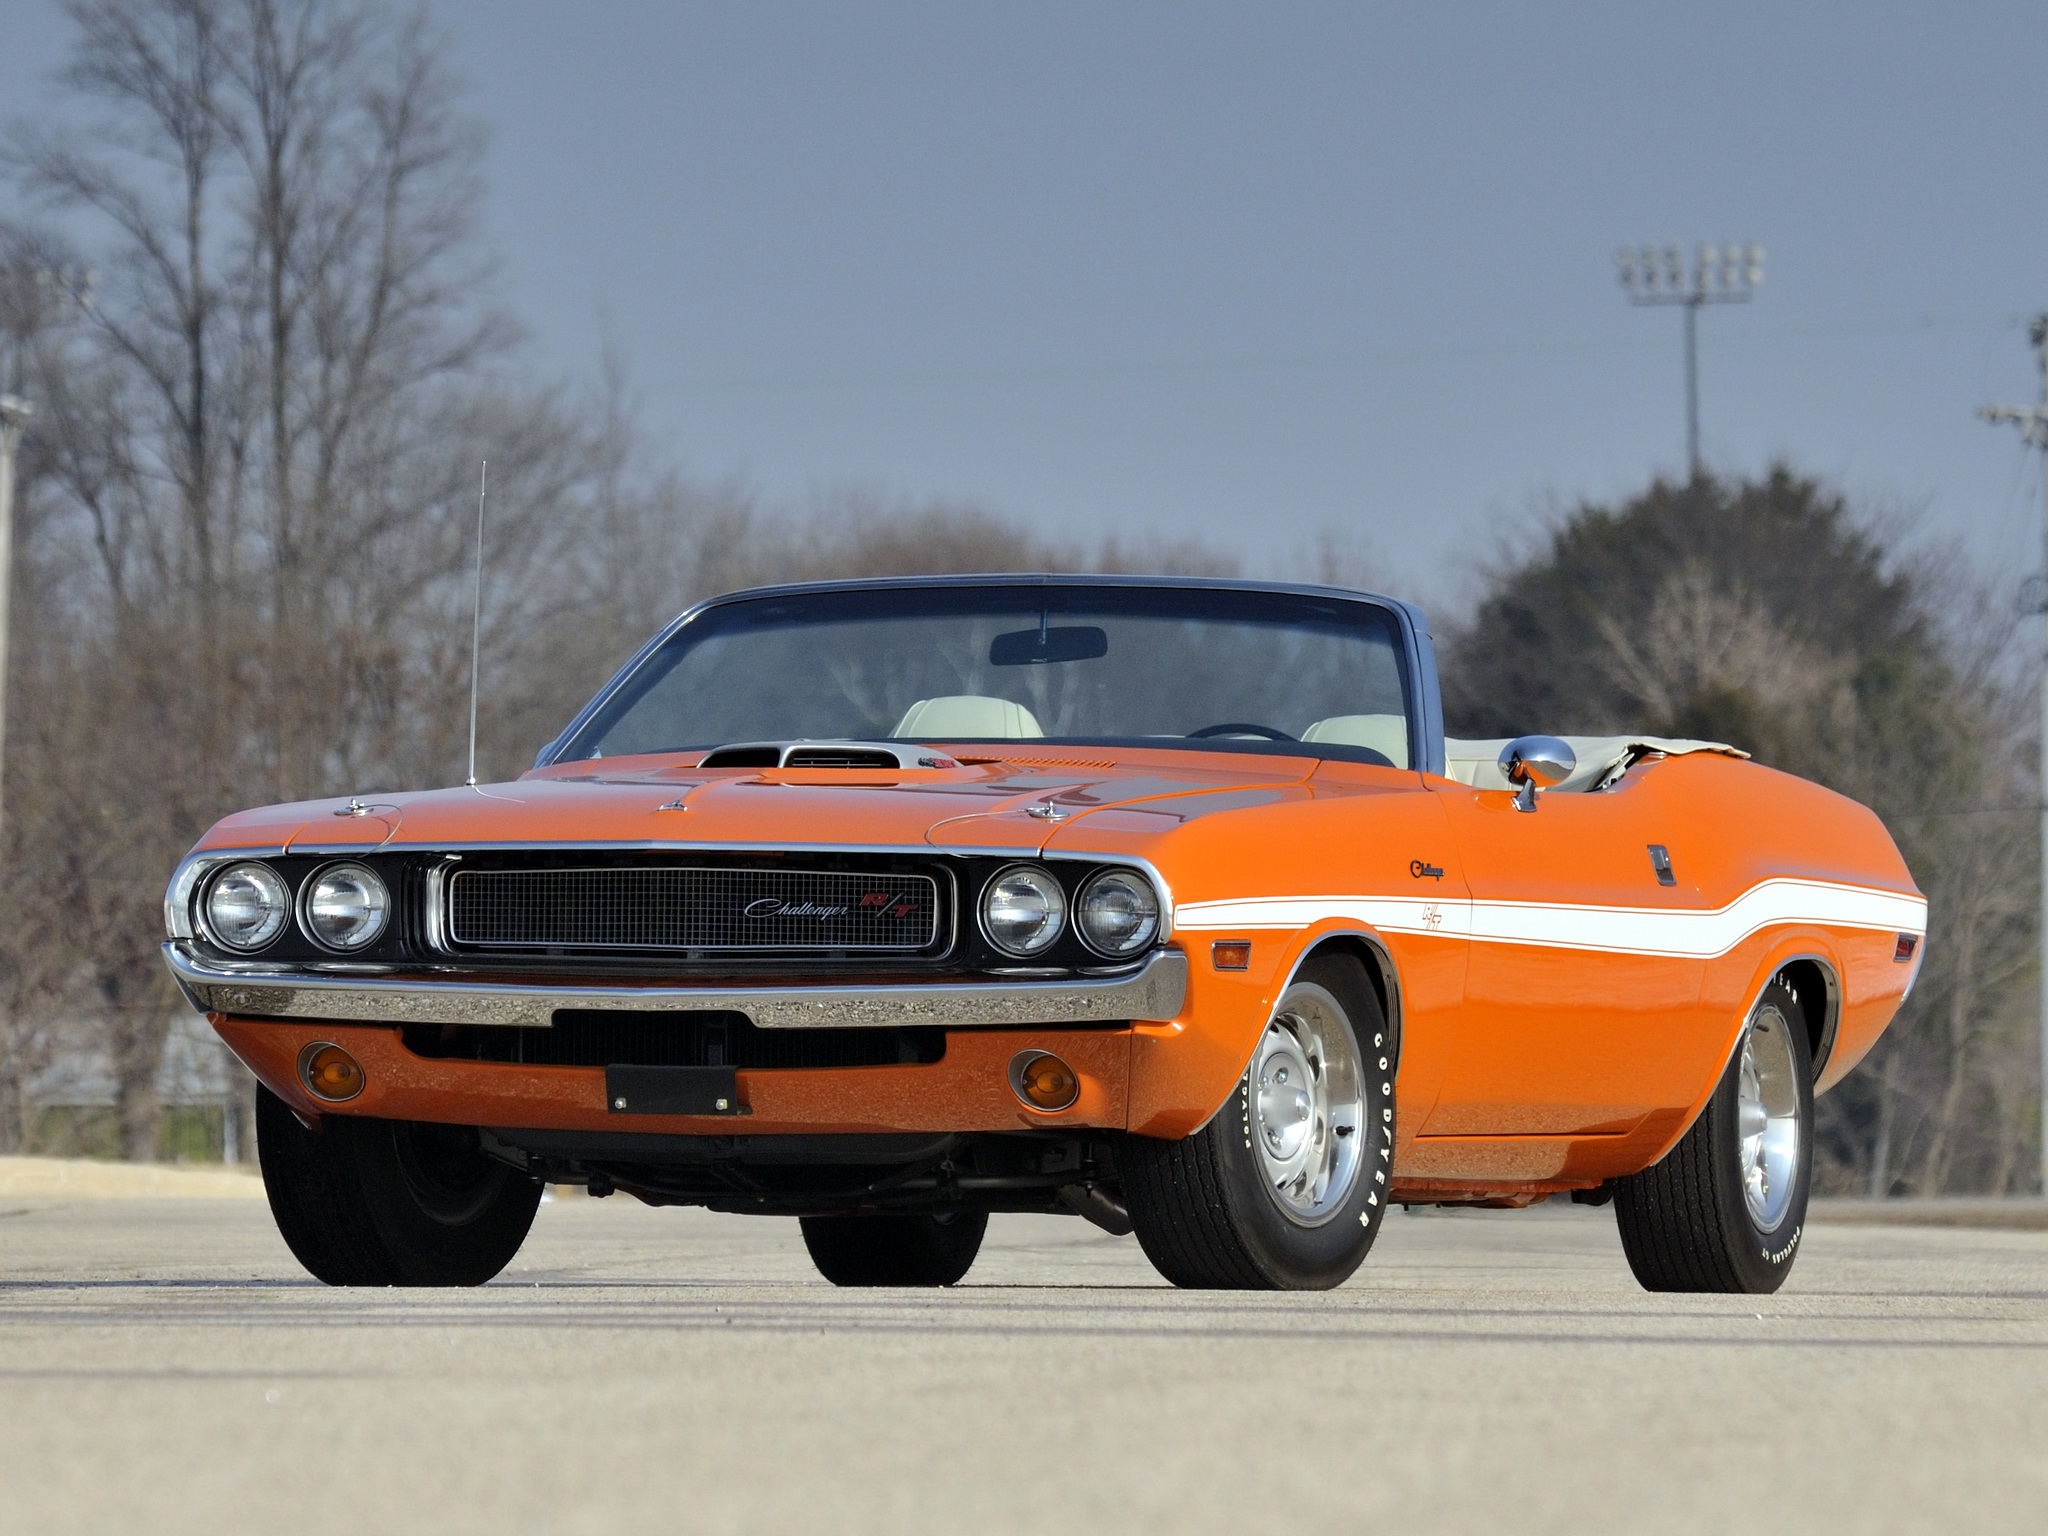 1970 Dodge Challenger Rt Convertible By 4wheelssociety On Deviantart